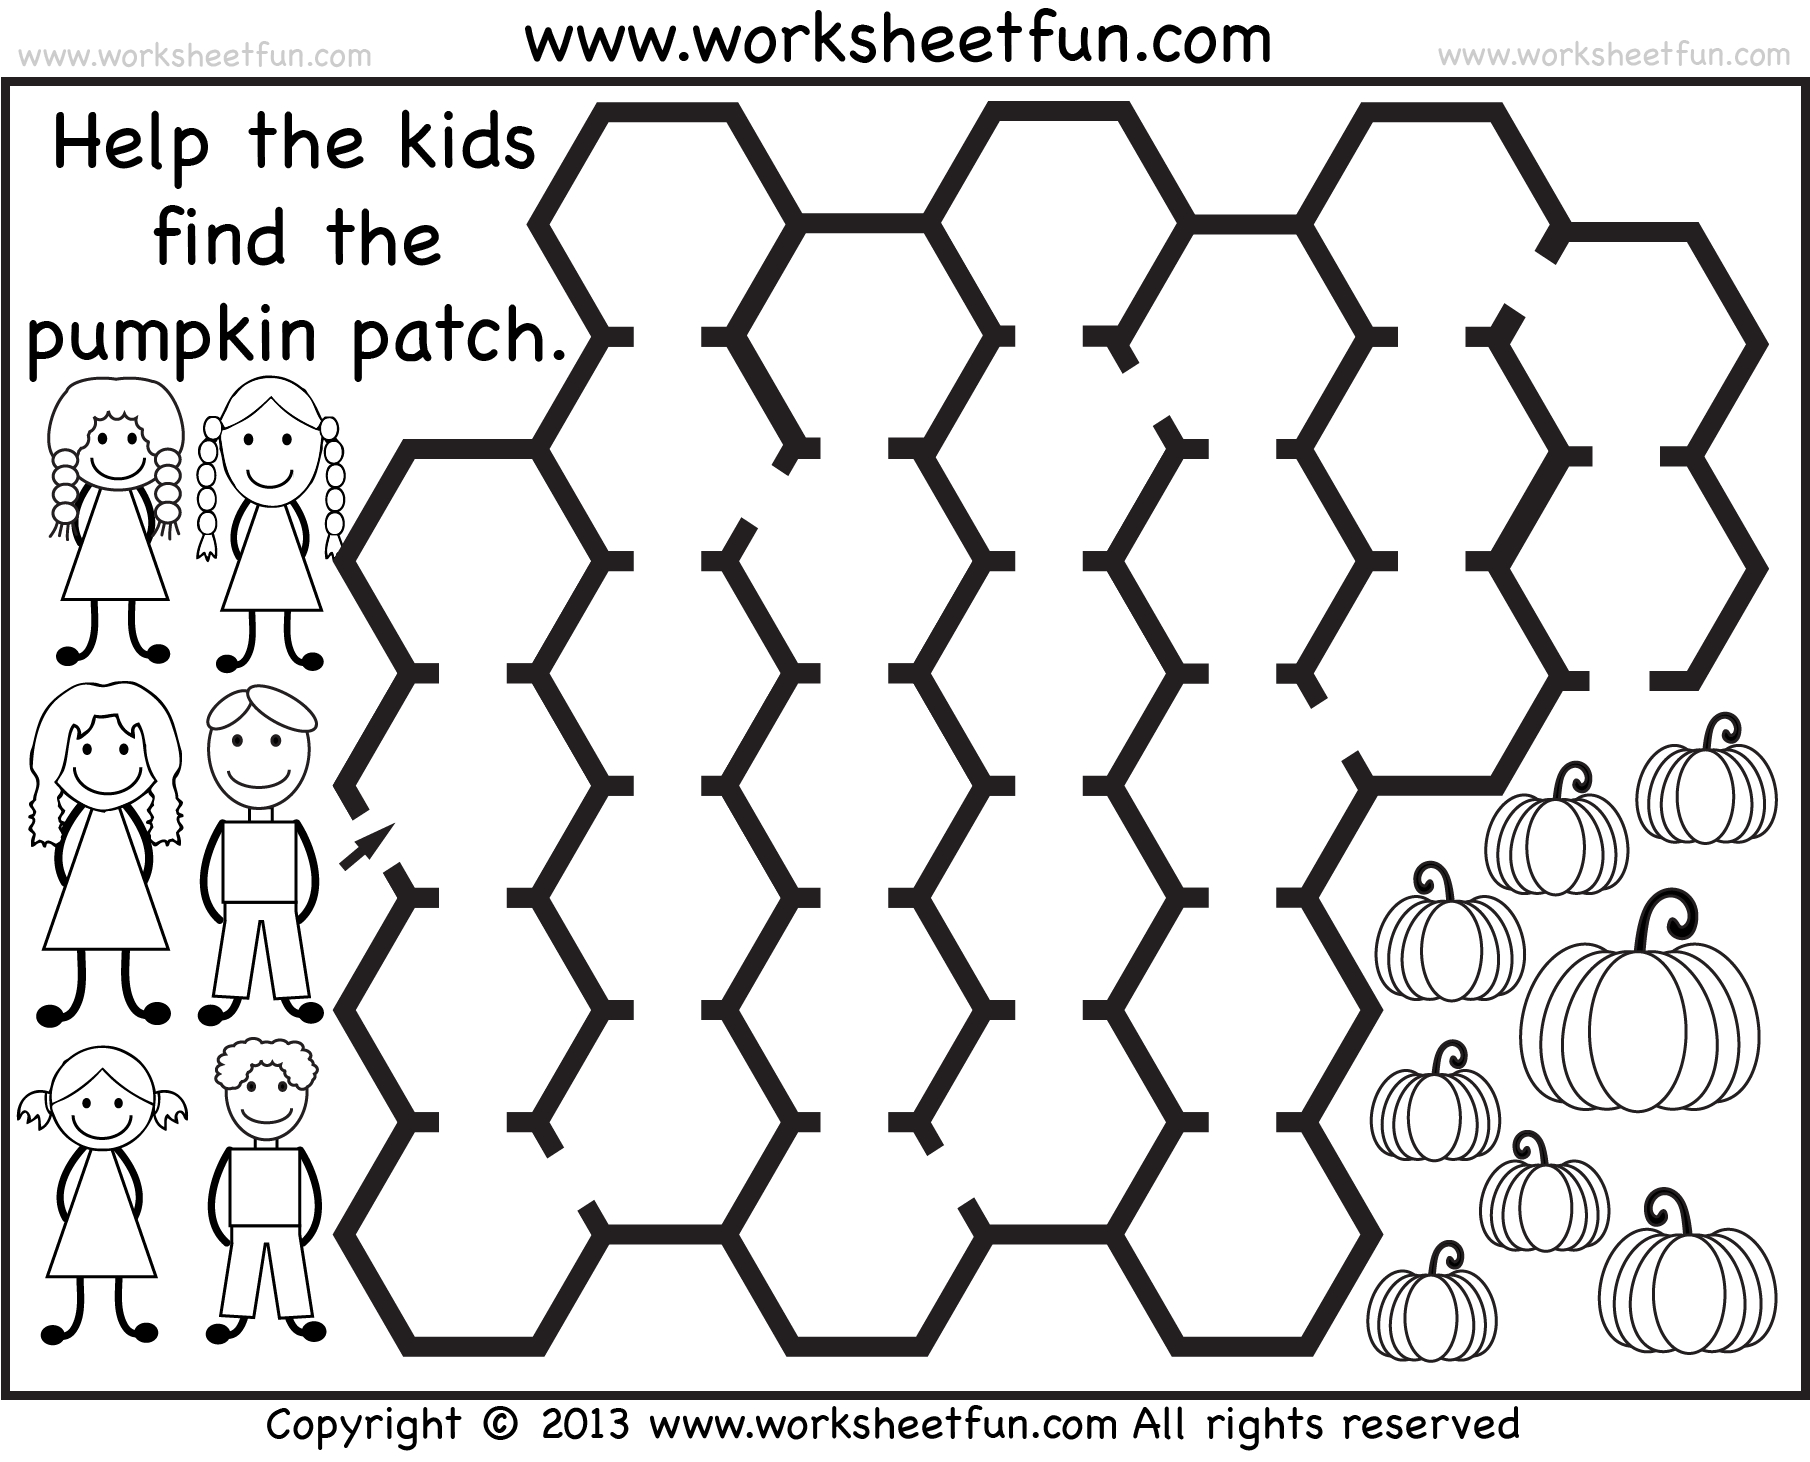 Pumpkin Patch Maze 2 Worksheets Free Printable